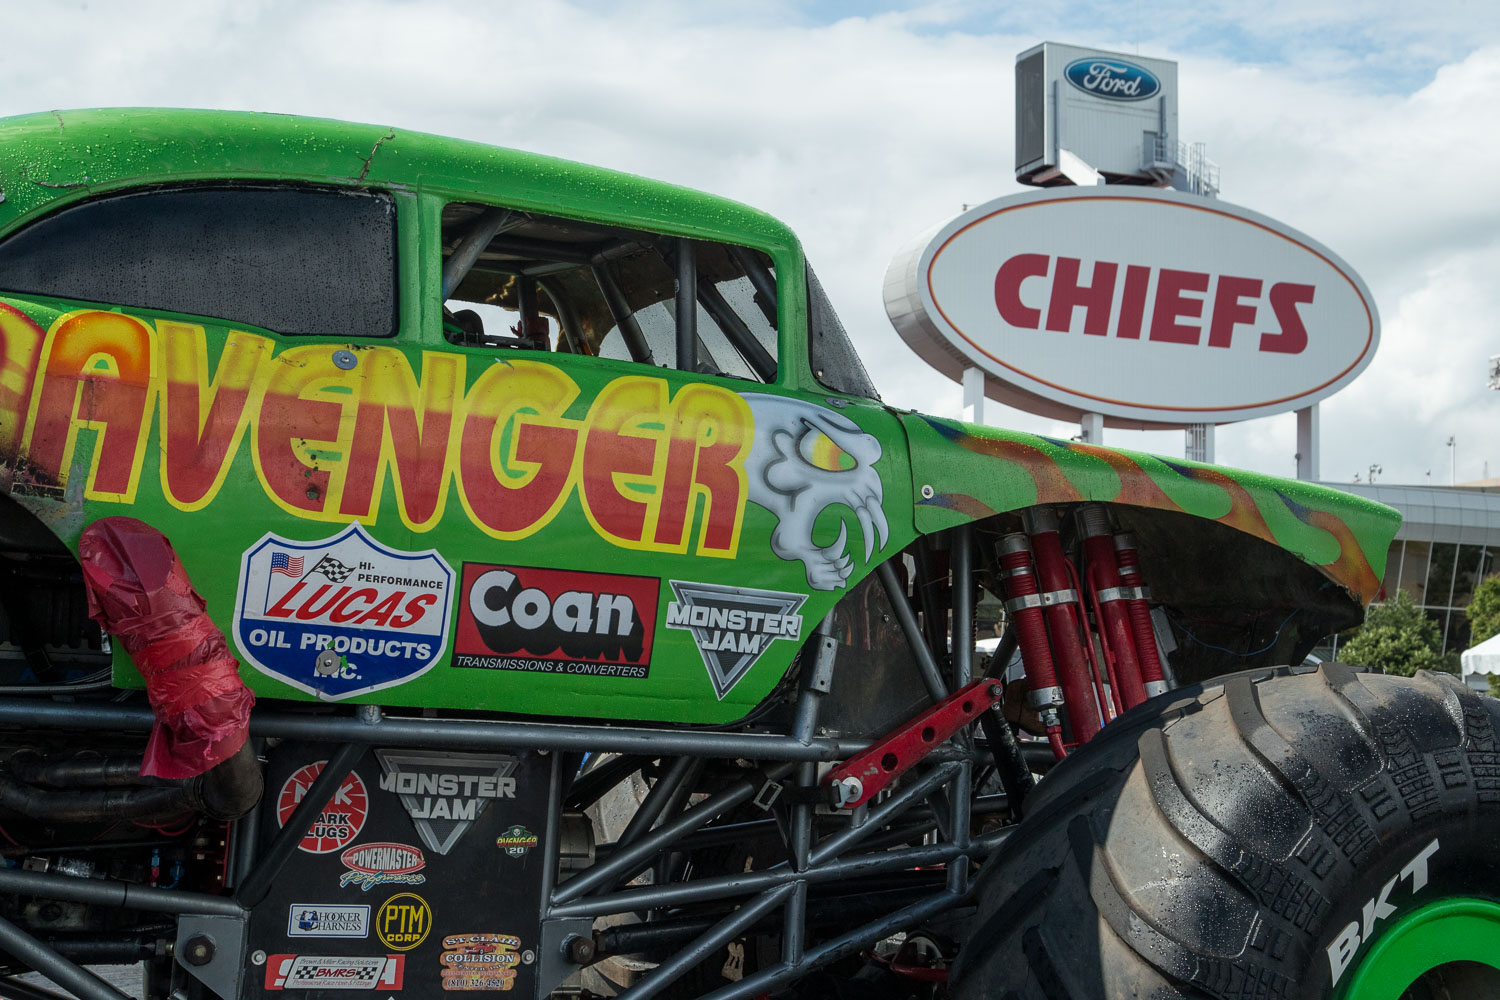 The Avenger truck during the Monster Jam Pit Party prior to the main event at GEHA Field at Arrowhead on Saturday evening, June 26, 2021.